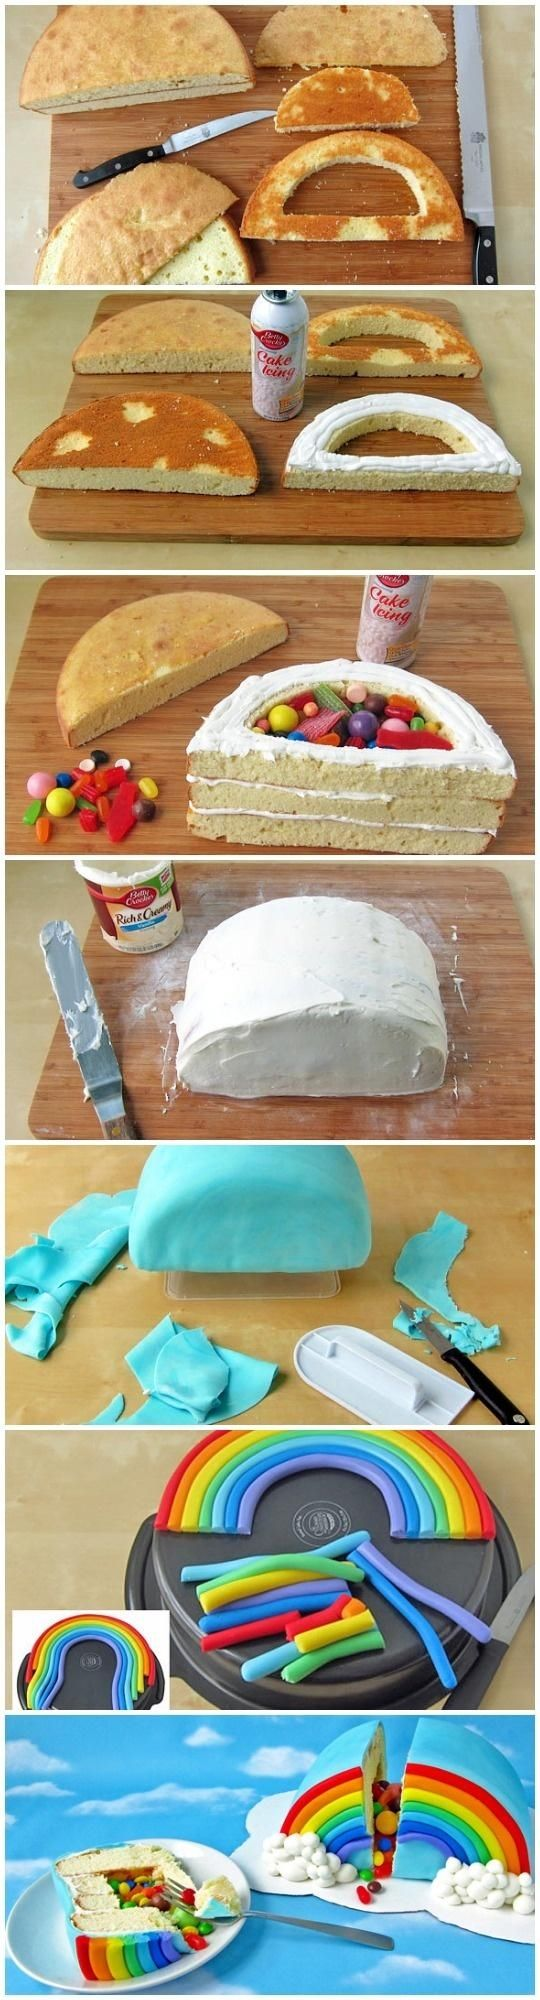 DIY Cake Pictures, Photos, and Images for Facebook, Tumblr, Pinterest, and Twitter: Cake Tutorial, Sweet, Rainbow Pinata, Pinata Cake, Rainbow Cakes, Food, Birthday Cake, Dessert